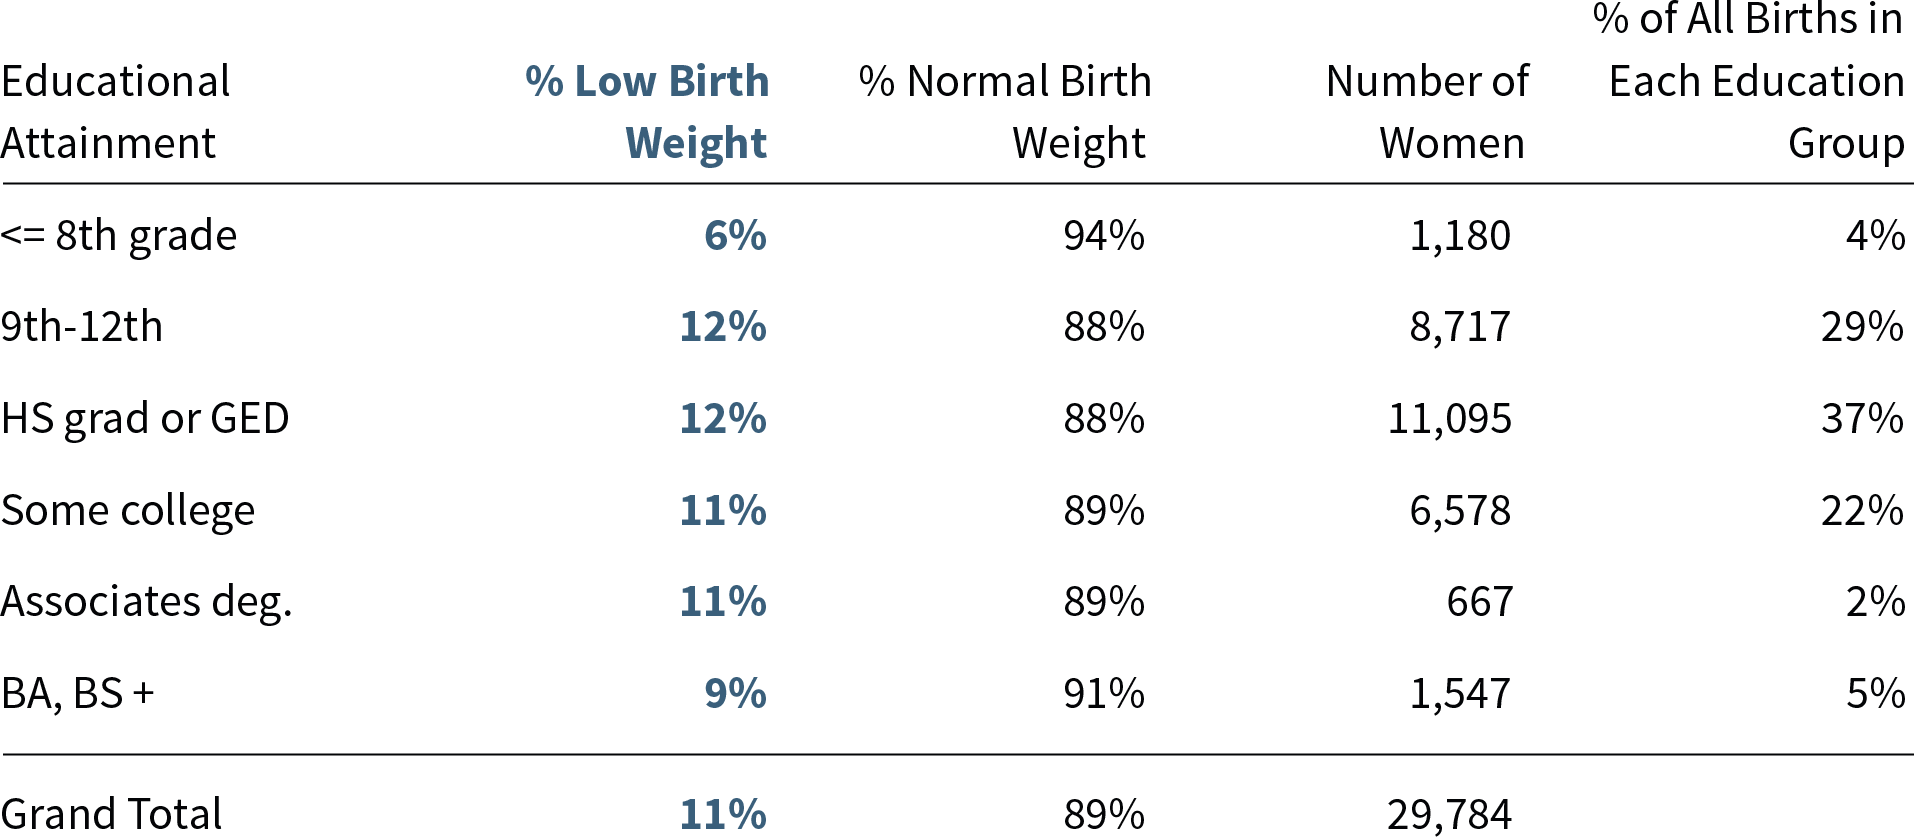 Data driven detroit moms place and low birth weight part 1 lbwpost1table2 aiddatafo Choice Image